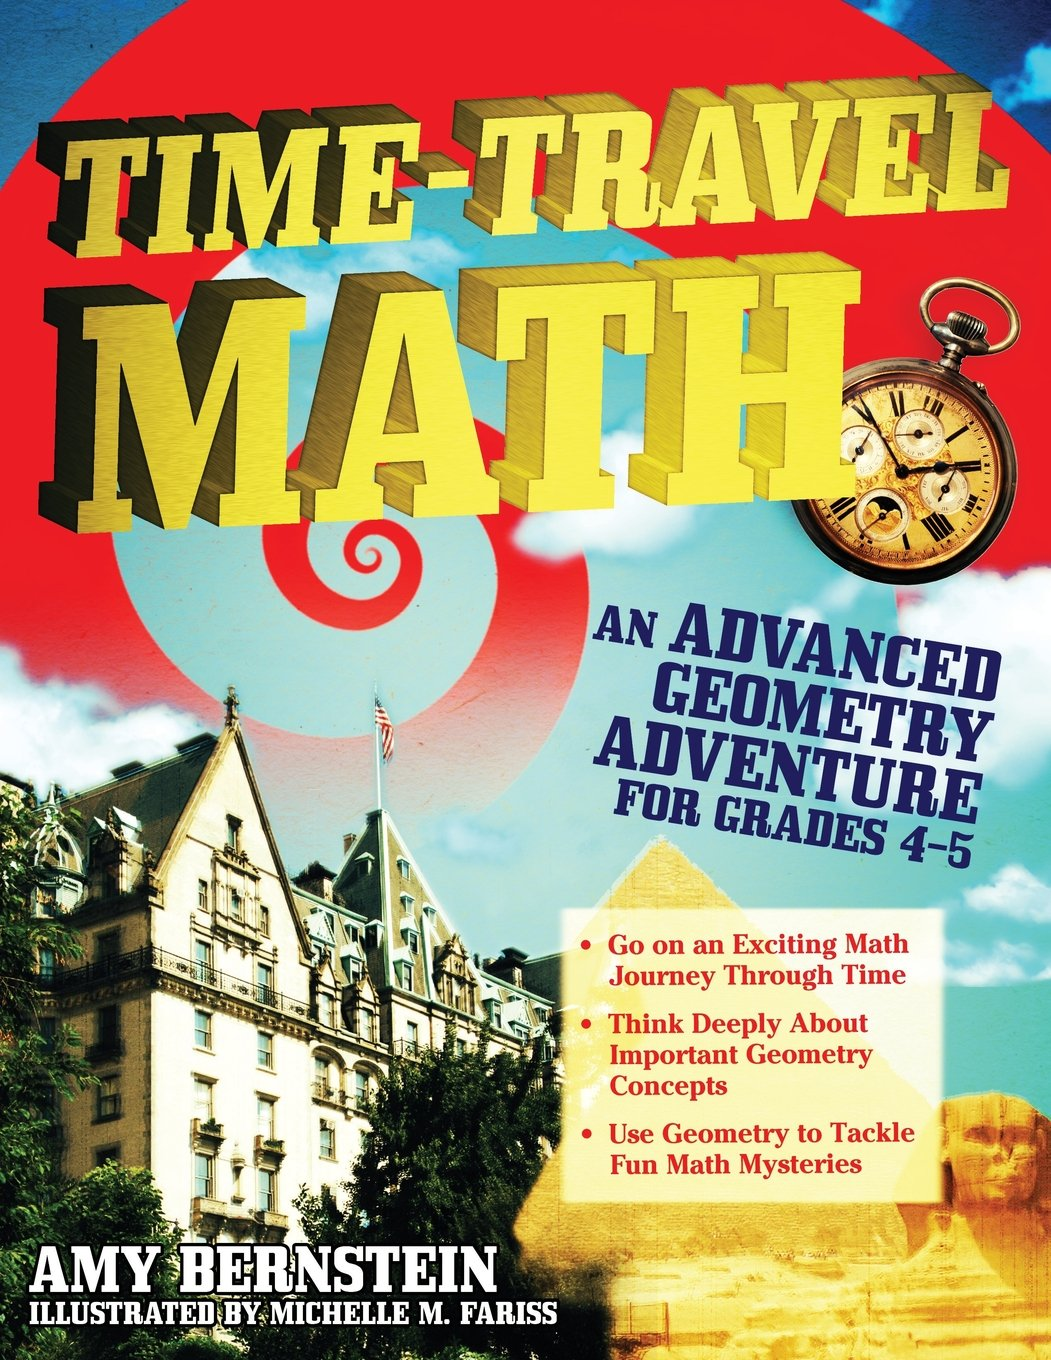 Amazon.com: Time-Travel Math: An Advanced Geometry Adventure for ...